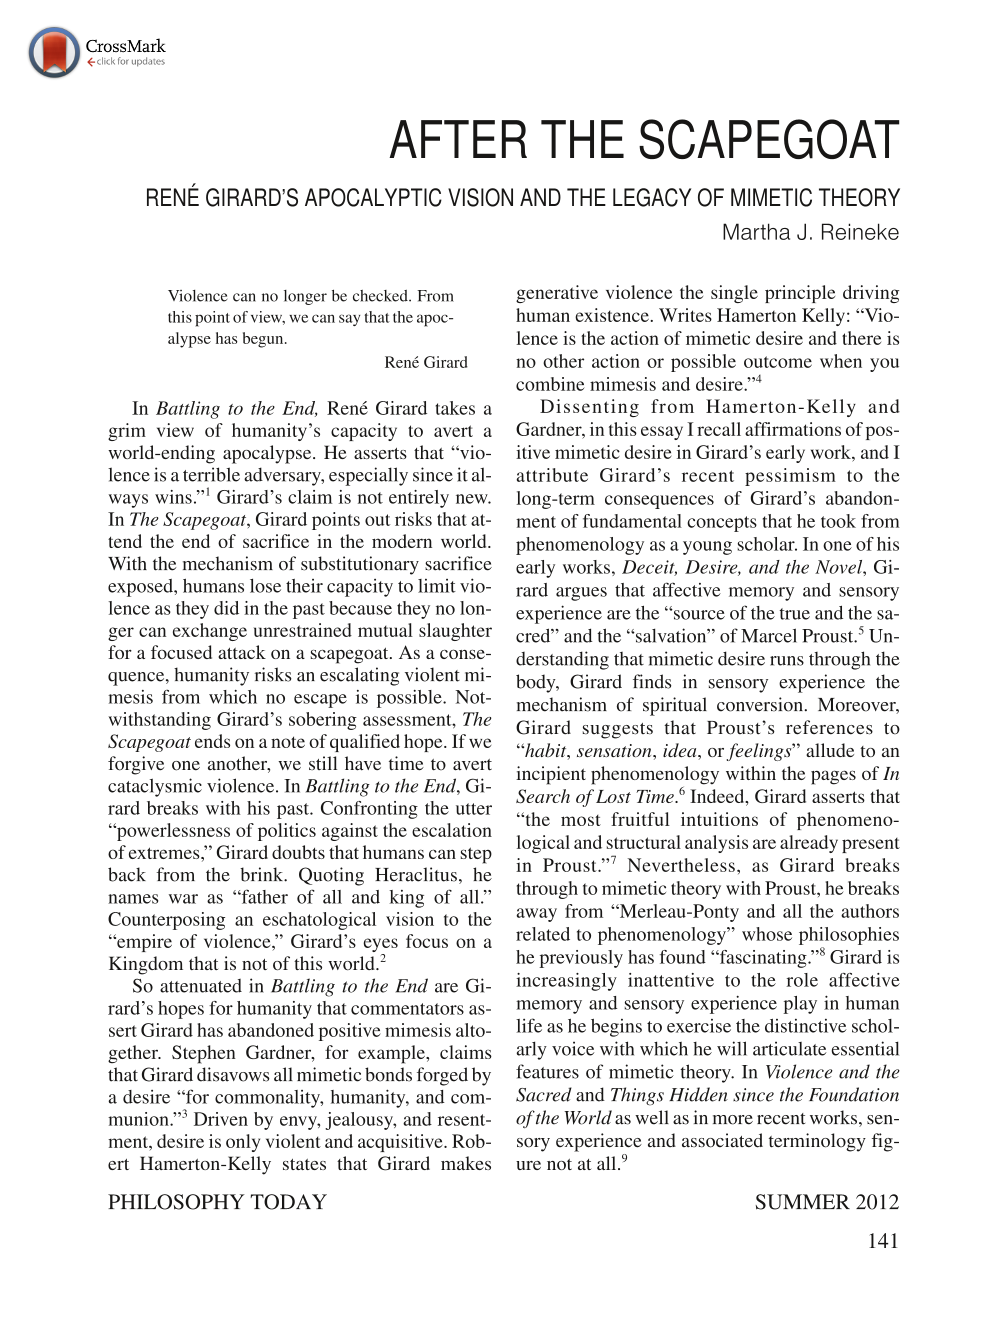 After the Scapegoat: René Girard's Apocalyptic Vision and the Legacy